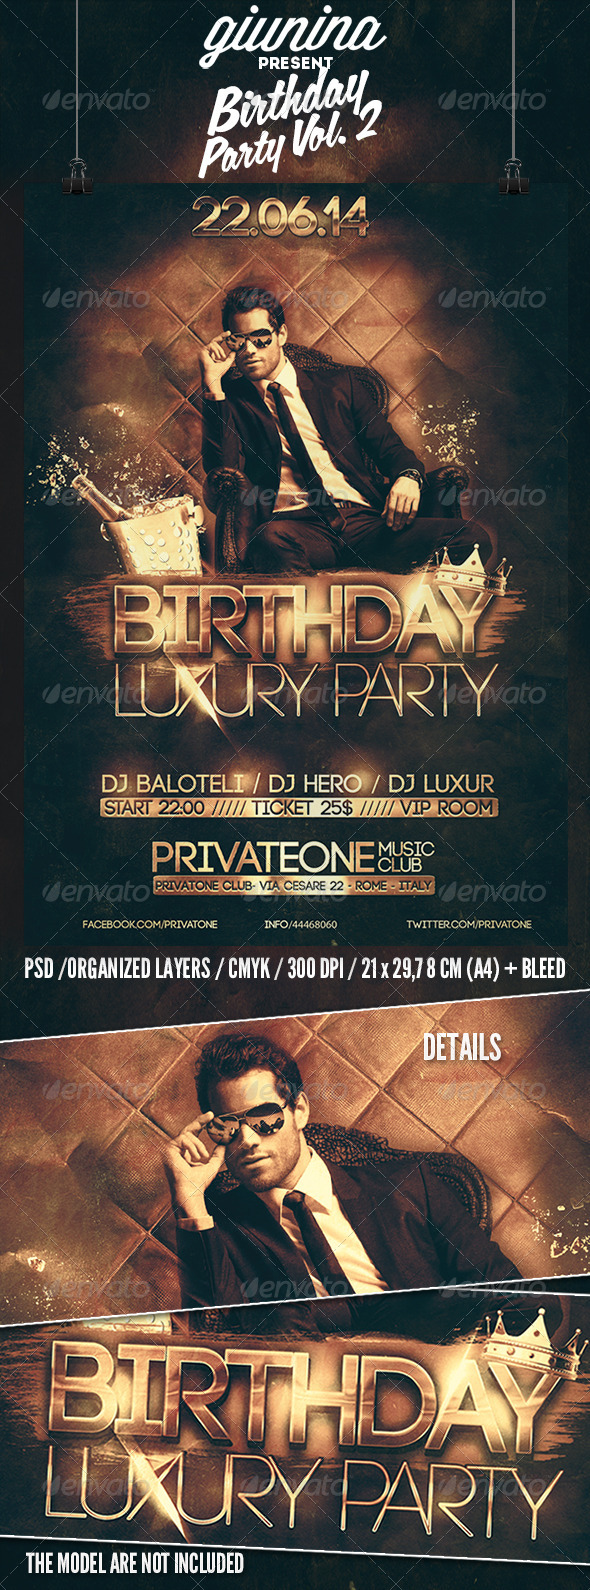 Birthday Party Vol 2 Flyer Template